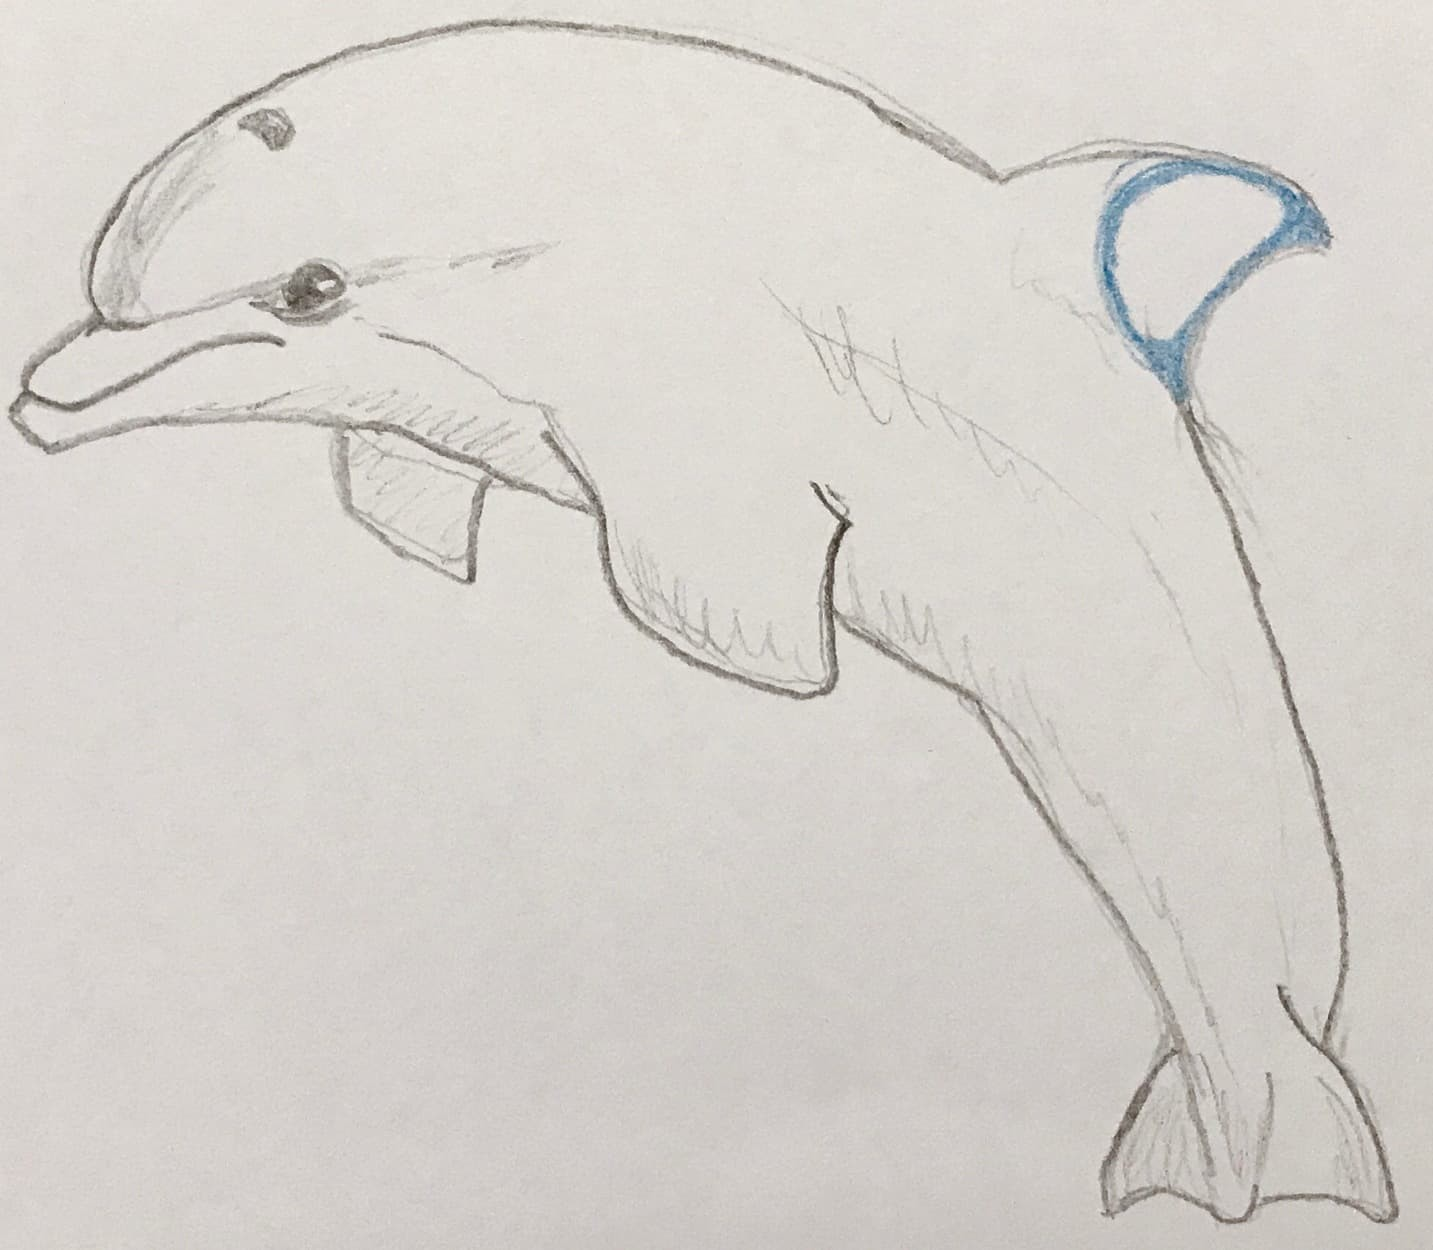 Dolphin with D for dorsal (Fin)